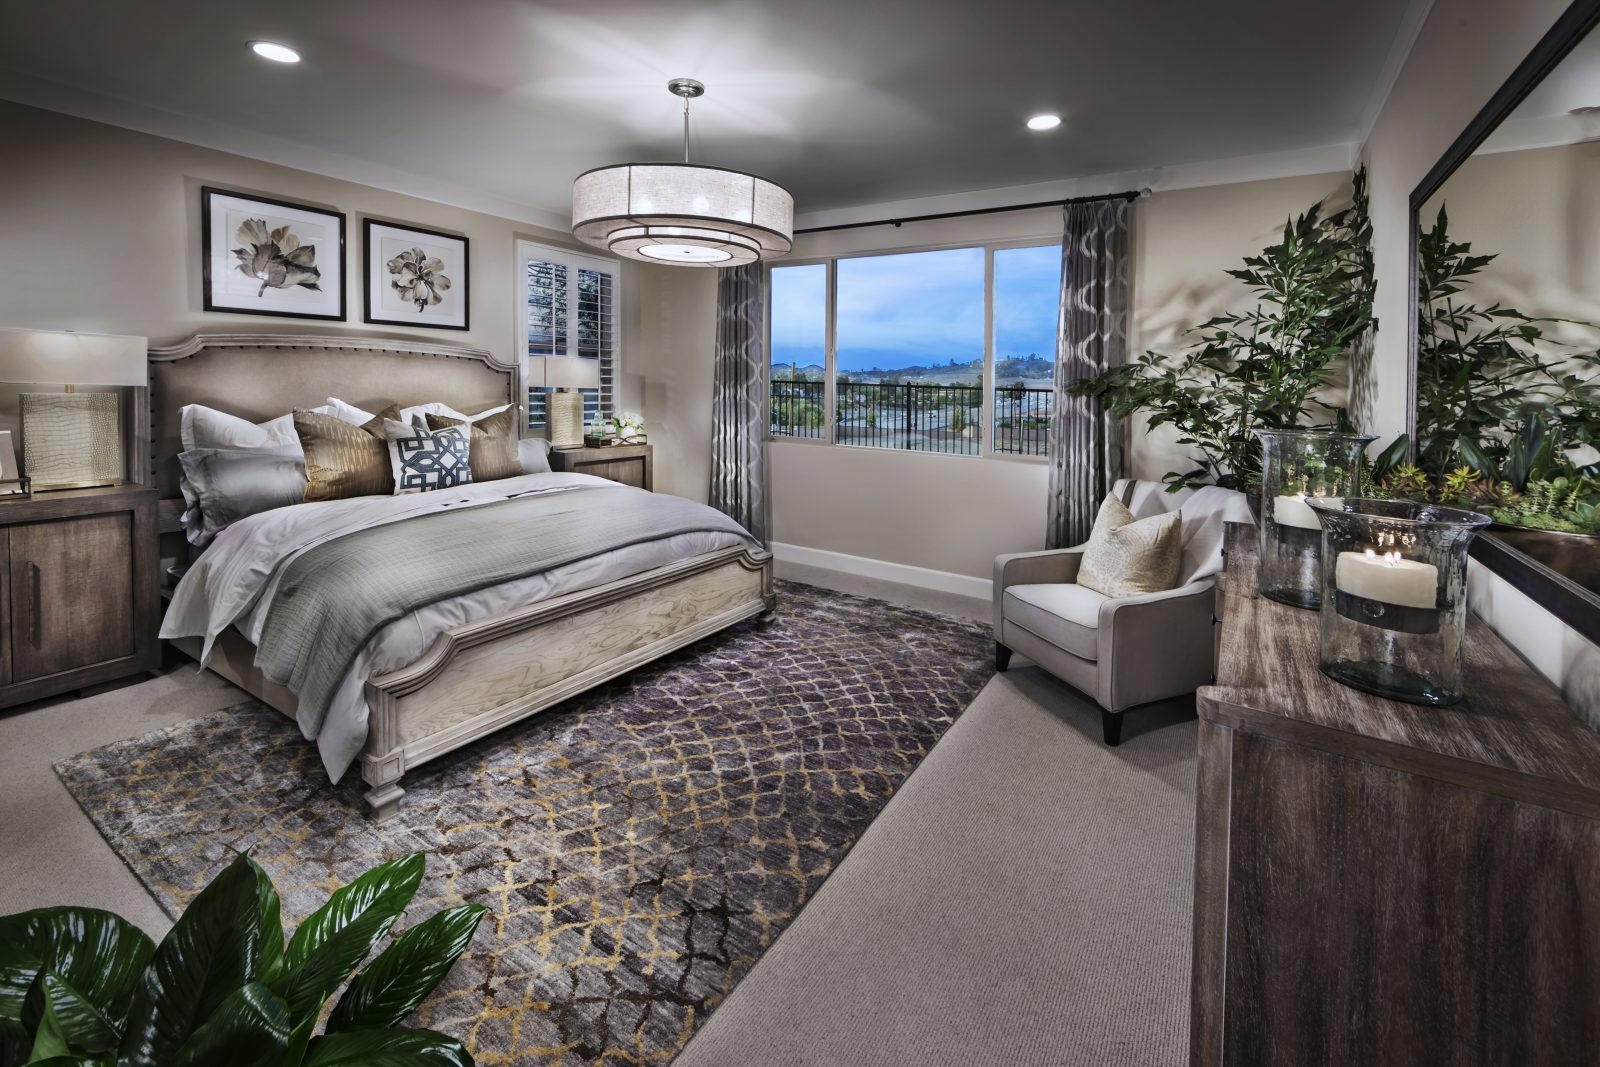 New home for sale in Menifee Province at Audie Murphy Ranch master bedroom